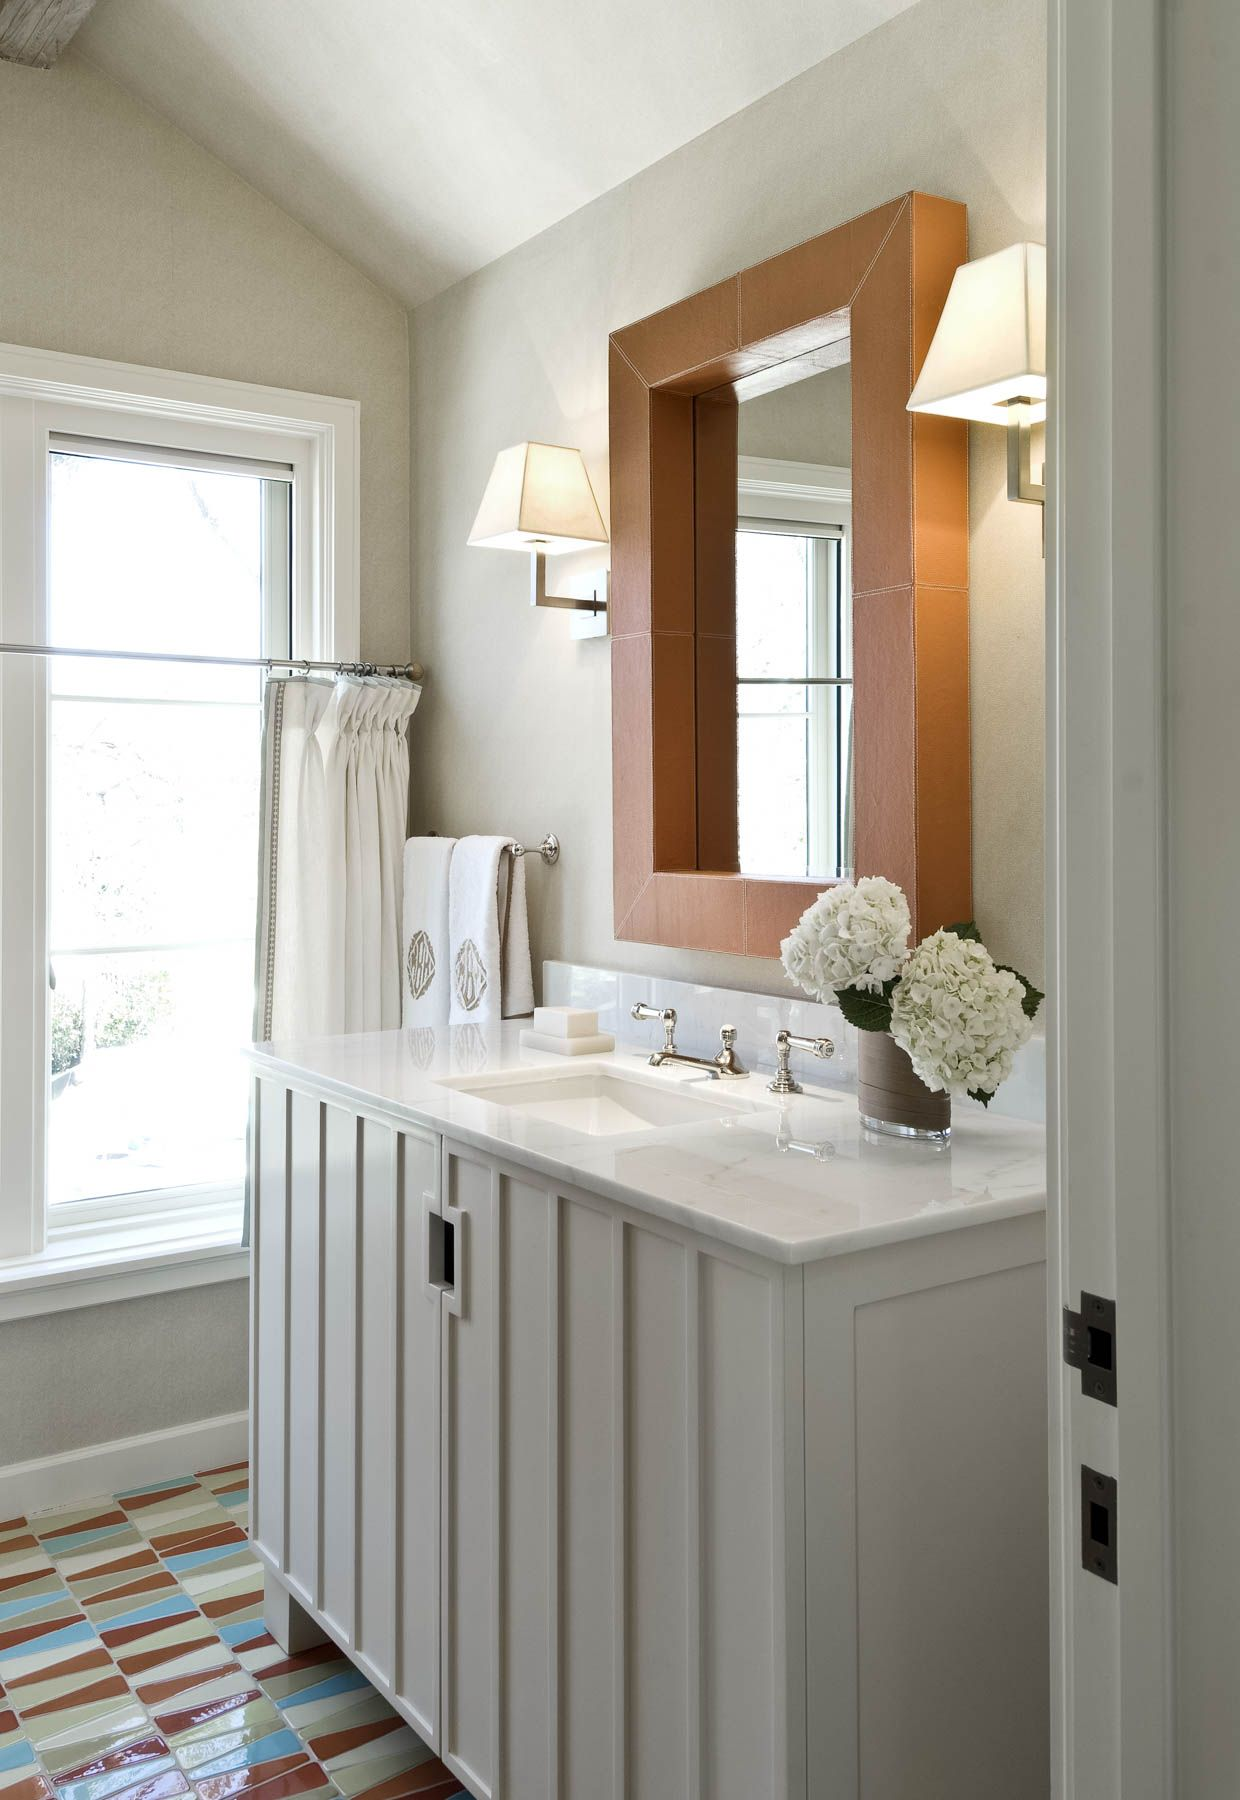 sophisticated retreat - Collins Interiors | BATHROOM | Pinterest ...